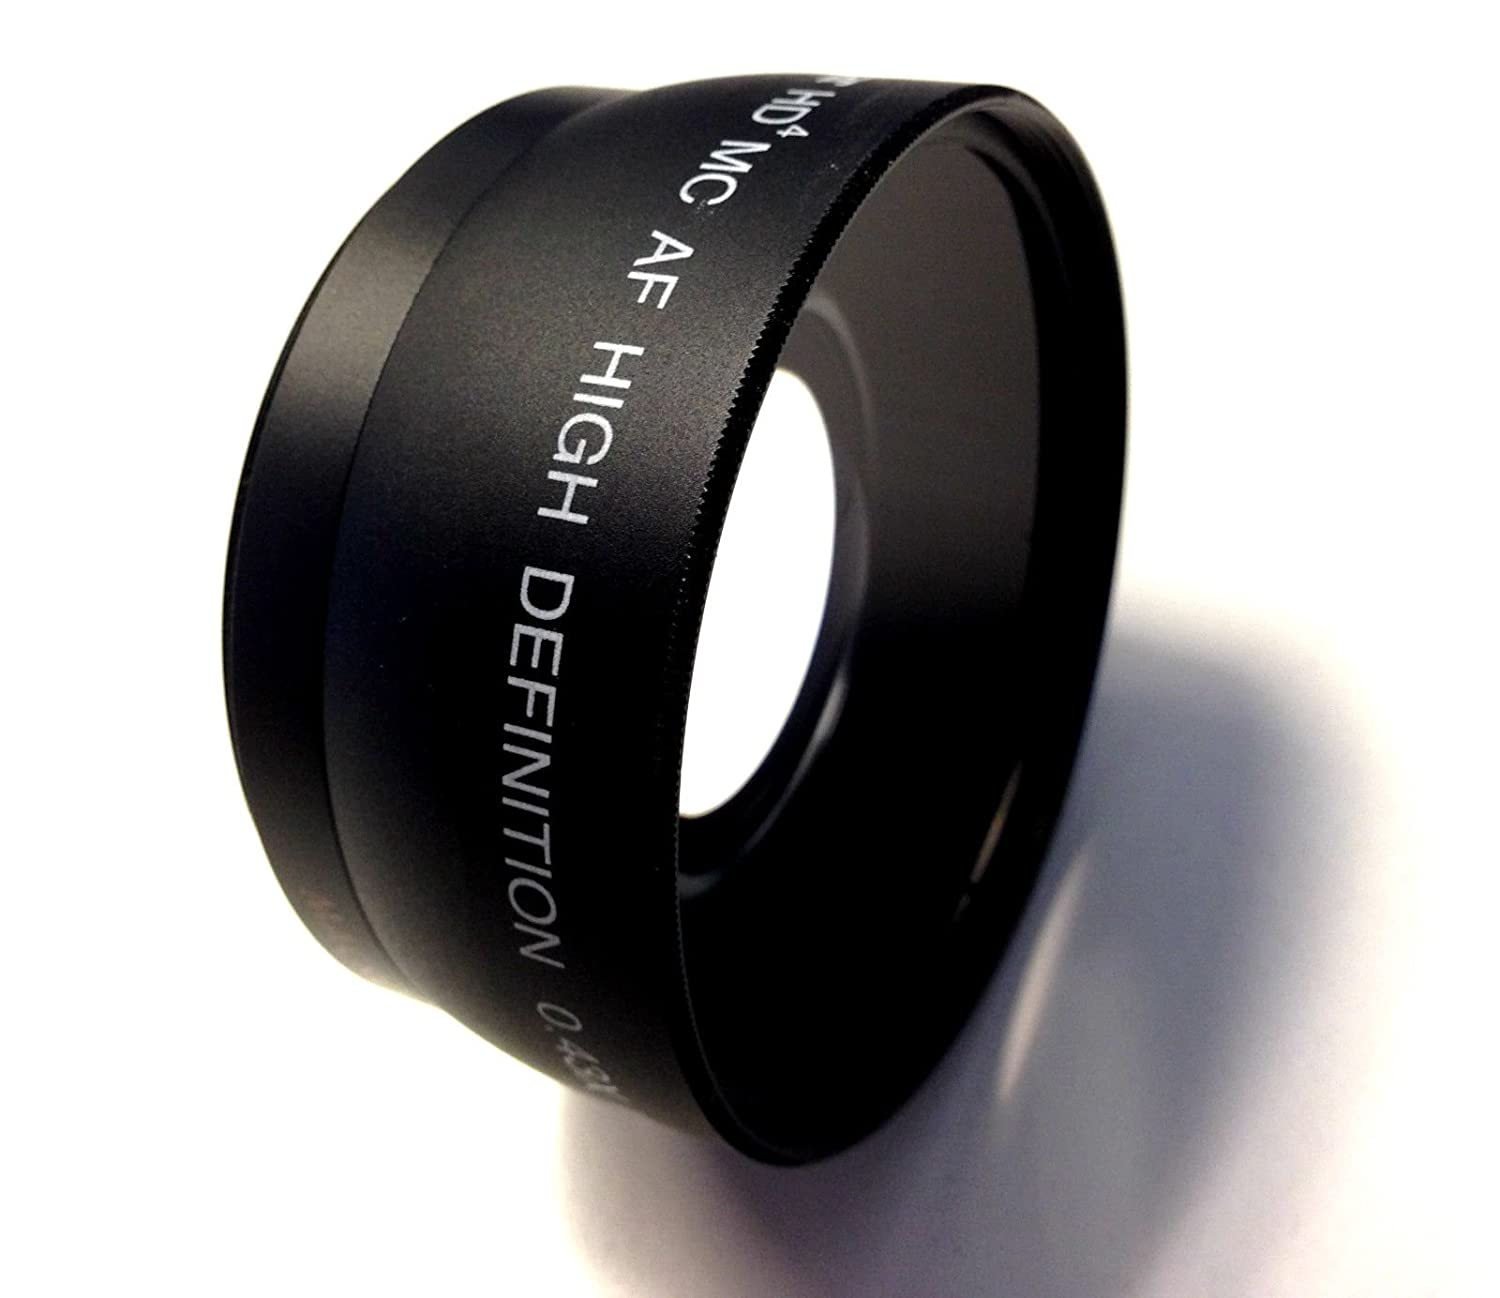 Polaroid Optics Multi-Coated UV Protective Filter For The Sony HDR-NX5U Handycam Camcorder